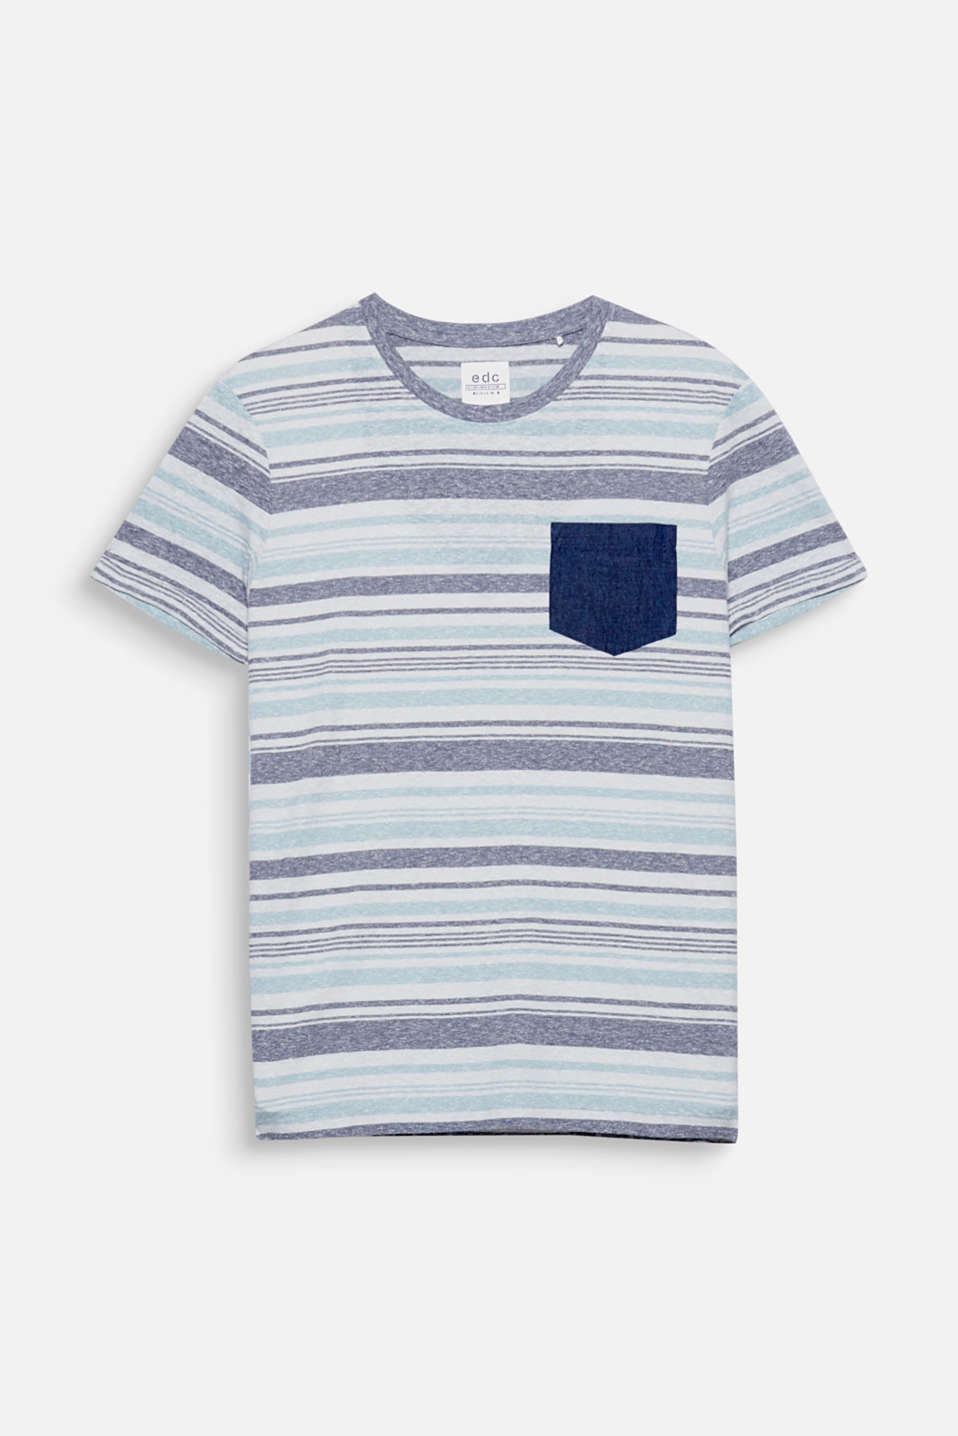 The casual striped look gives this jersey T-shirt a casual look.